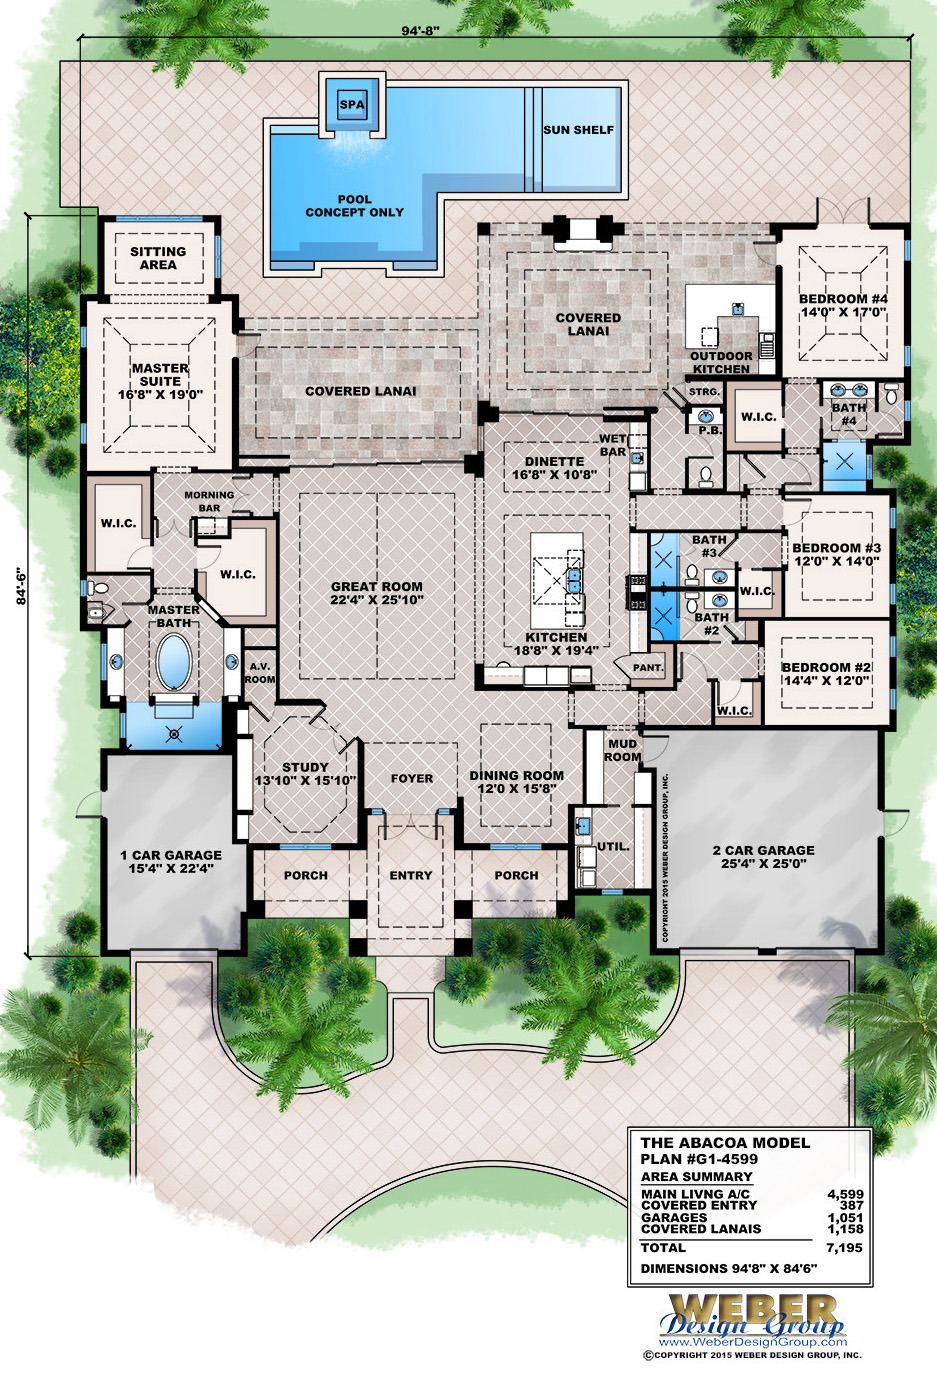 Luxury House Plans with Photos Elegant Mansion Home Plans and Designs Kumpalo